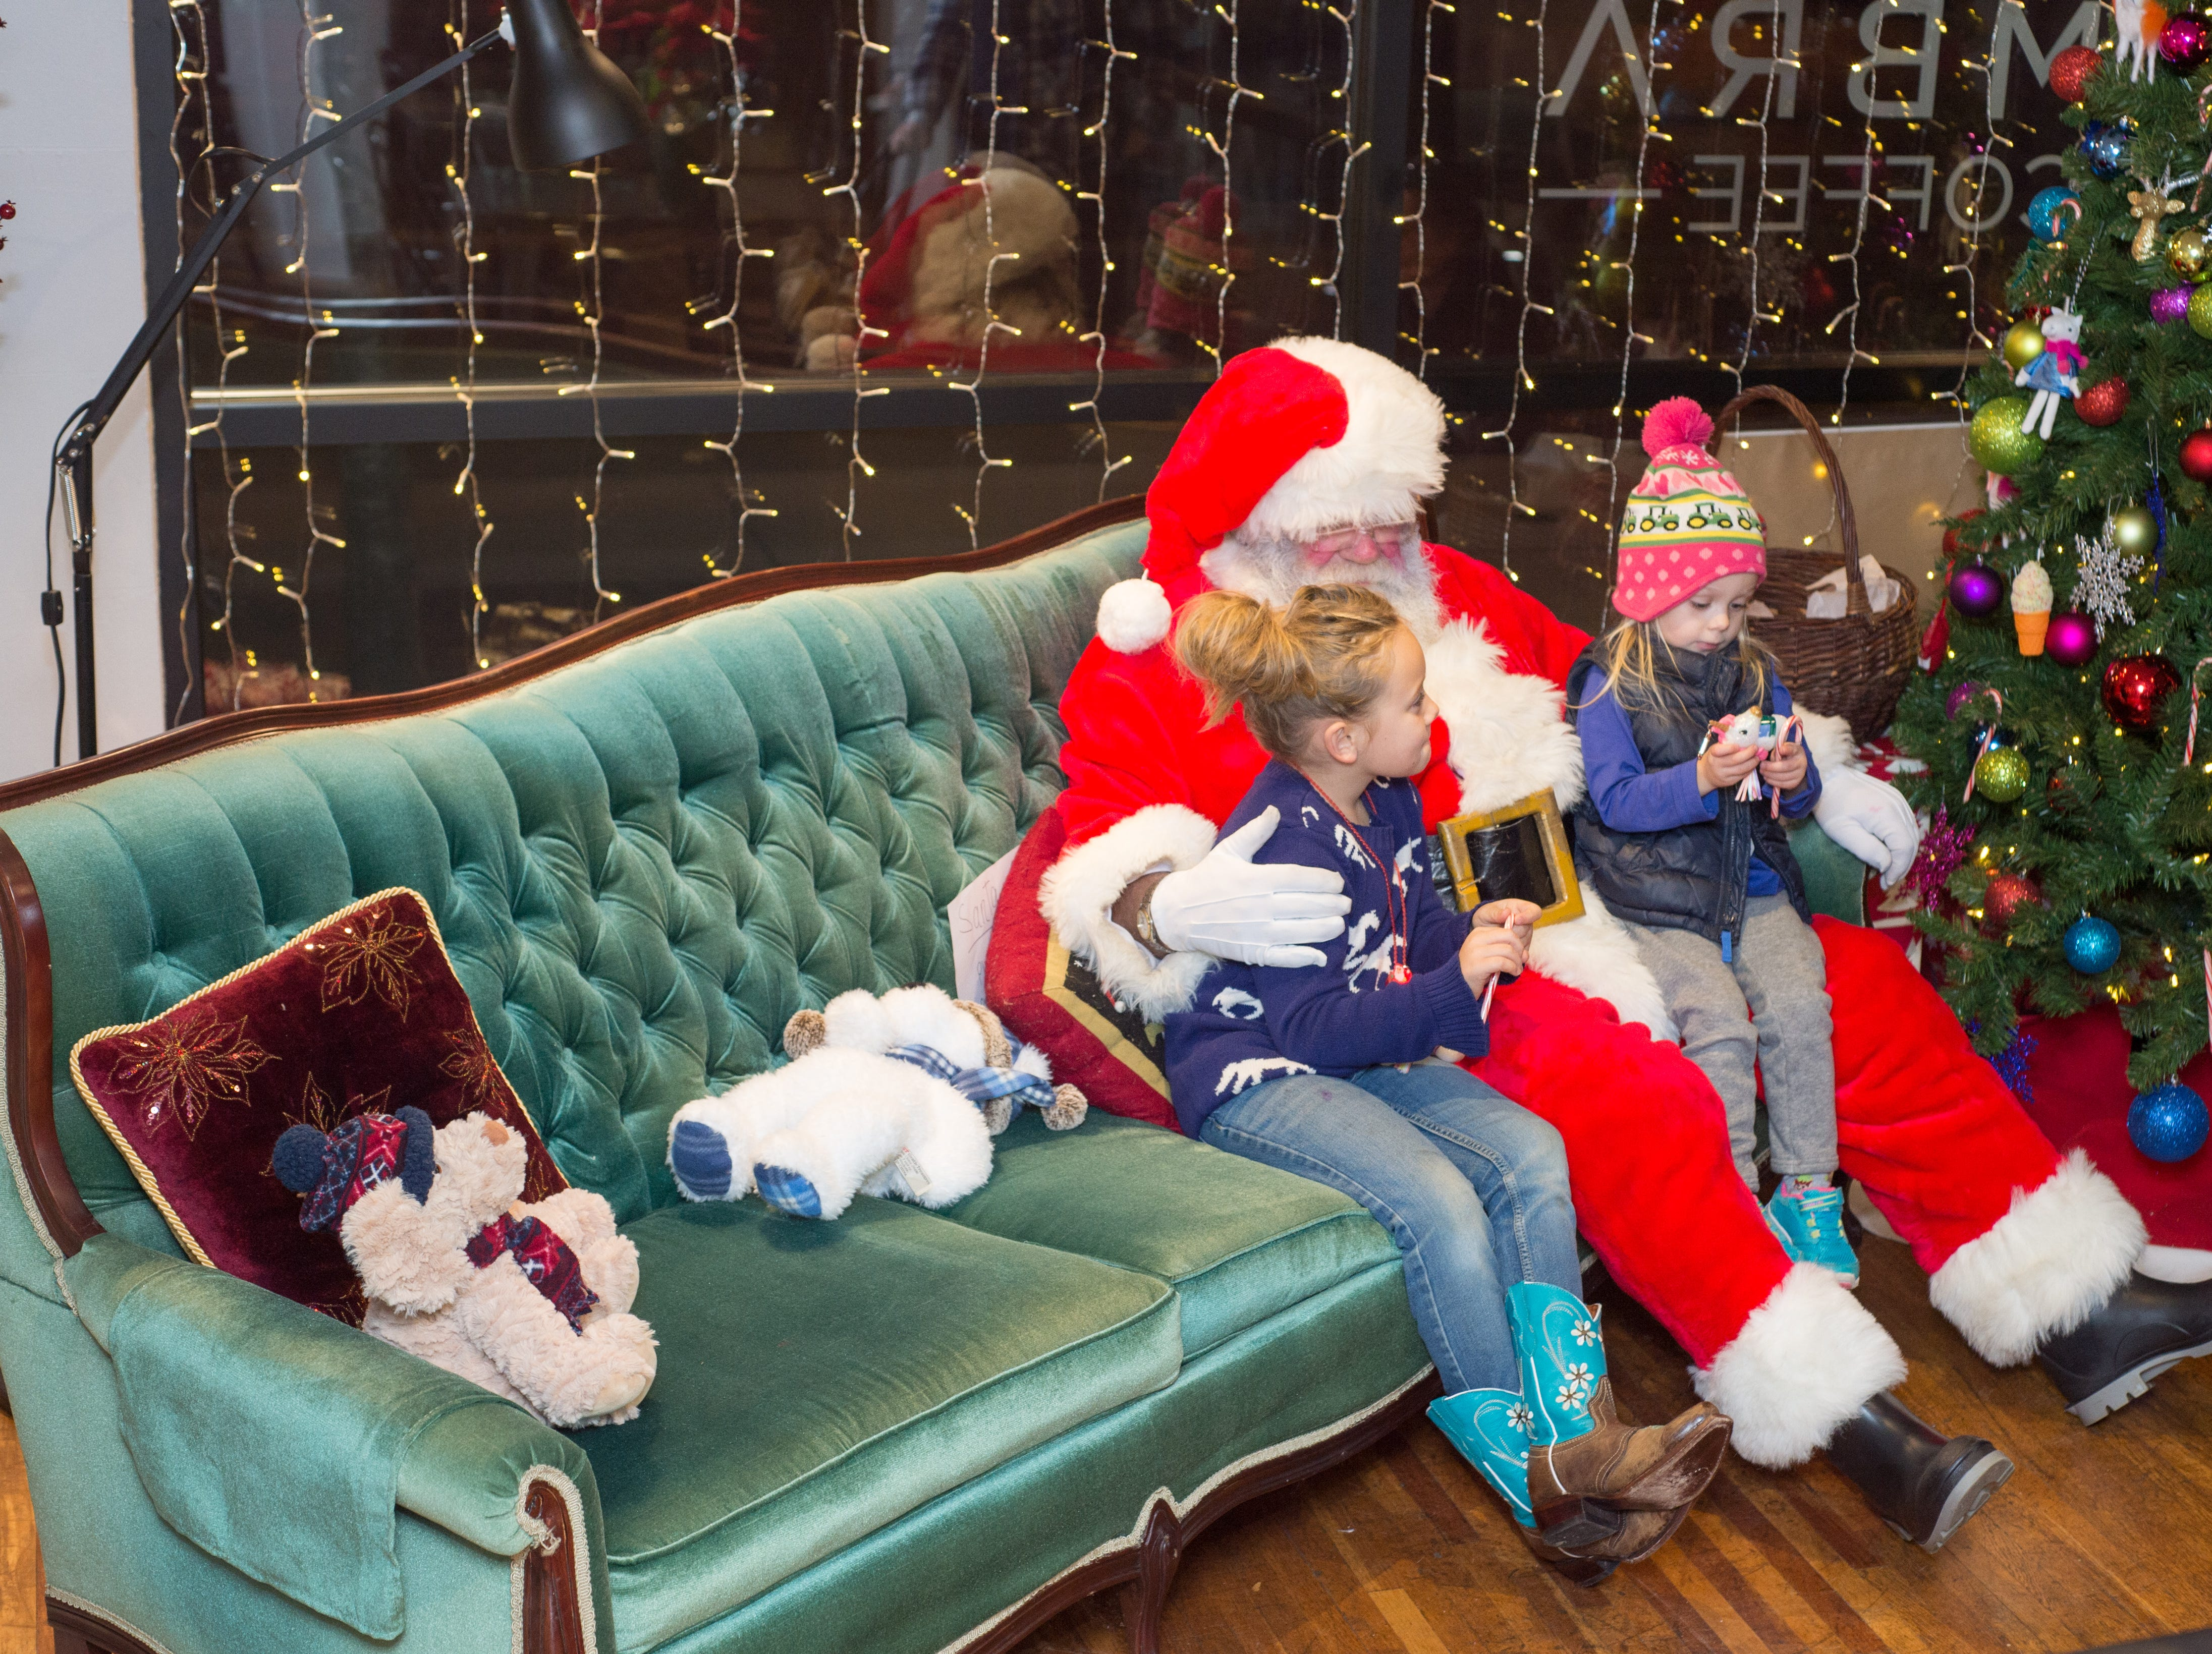 Vera and Etta have fun during the Santa on the Square event presented by Historic Downtown Gallatin at 106 Public Square on Saturday, Dec. 22.